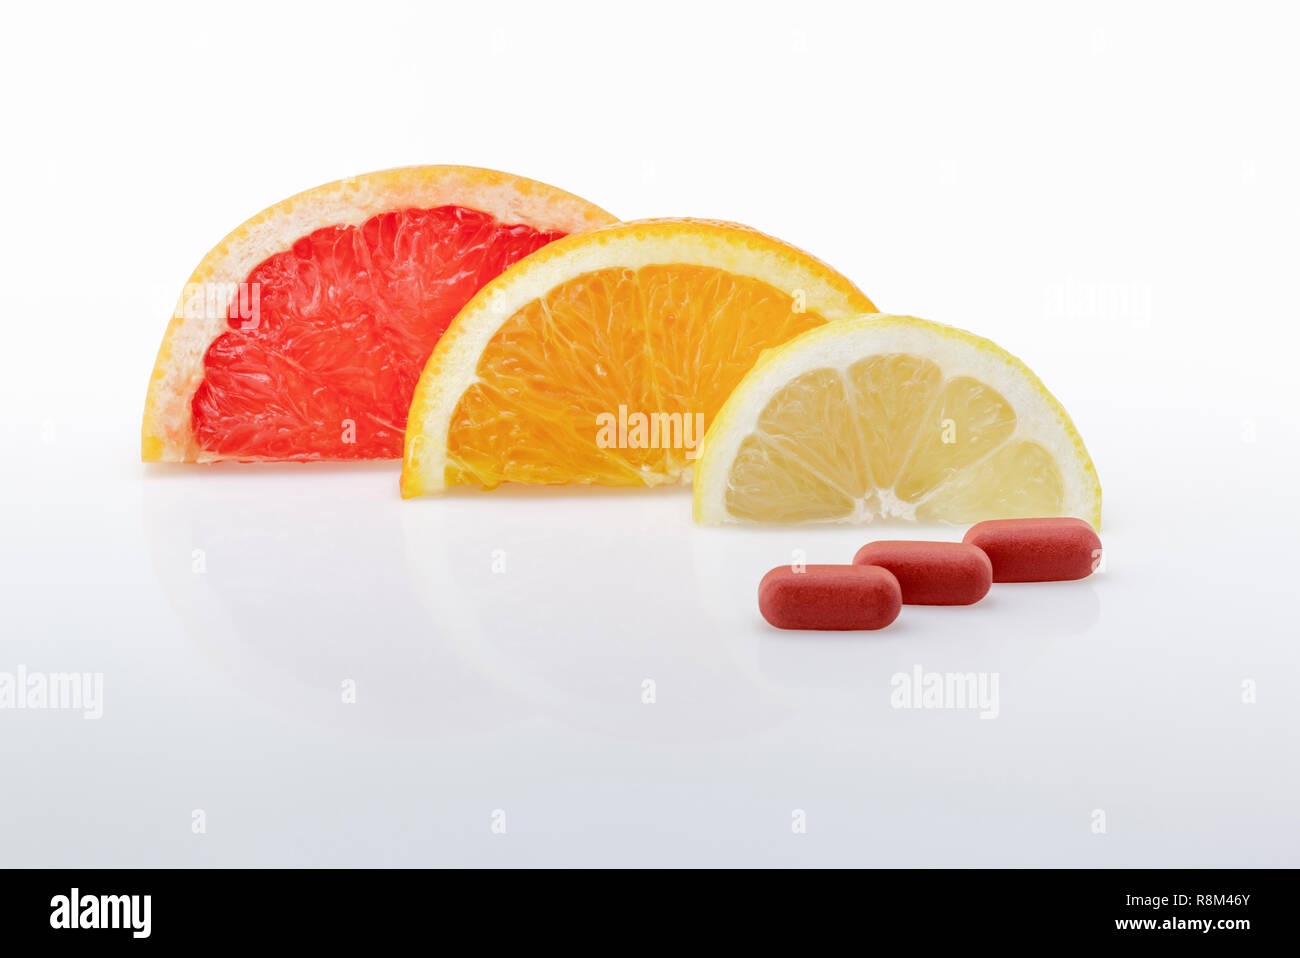 Vitamin C Tablets Stock Photos Amp Vitamin C Tablets Stock Images